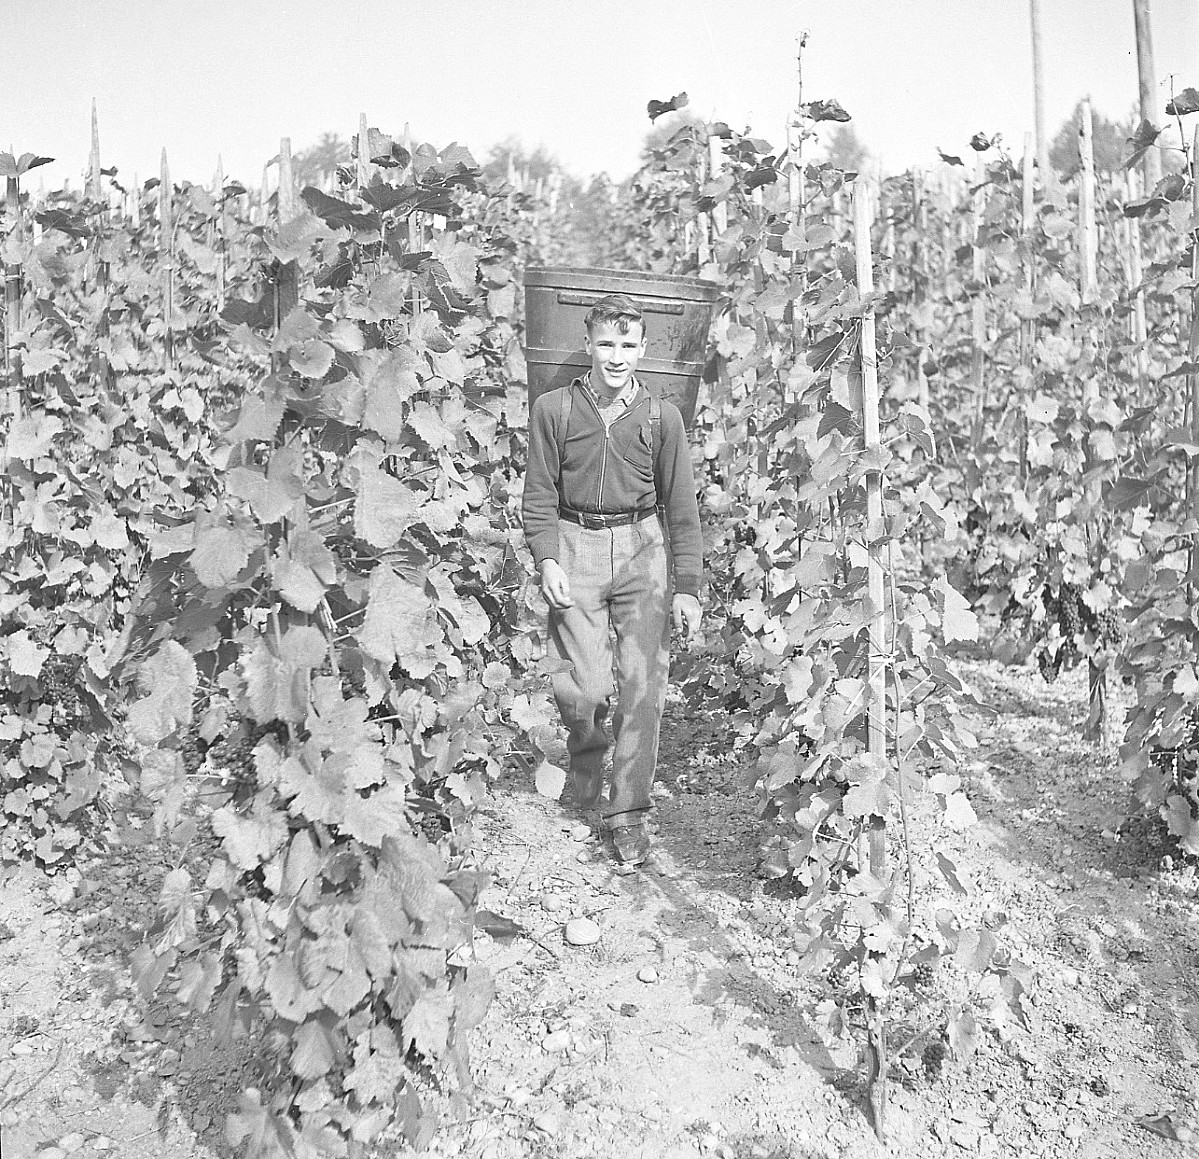 GFA 17/510963.10: Grape harvest at the apprentices' home in Dachsen